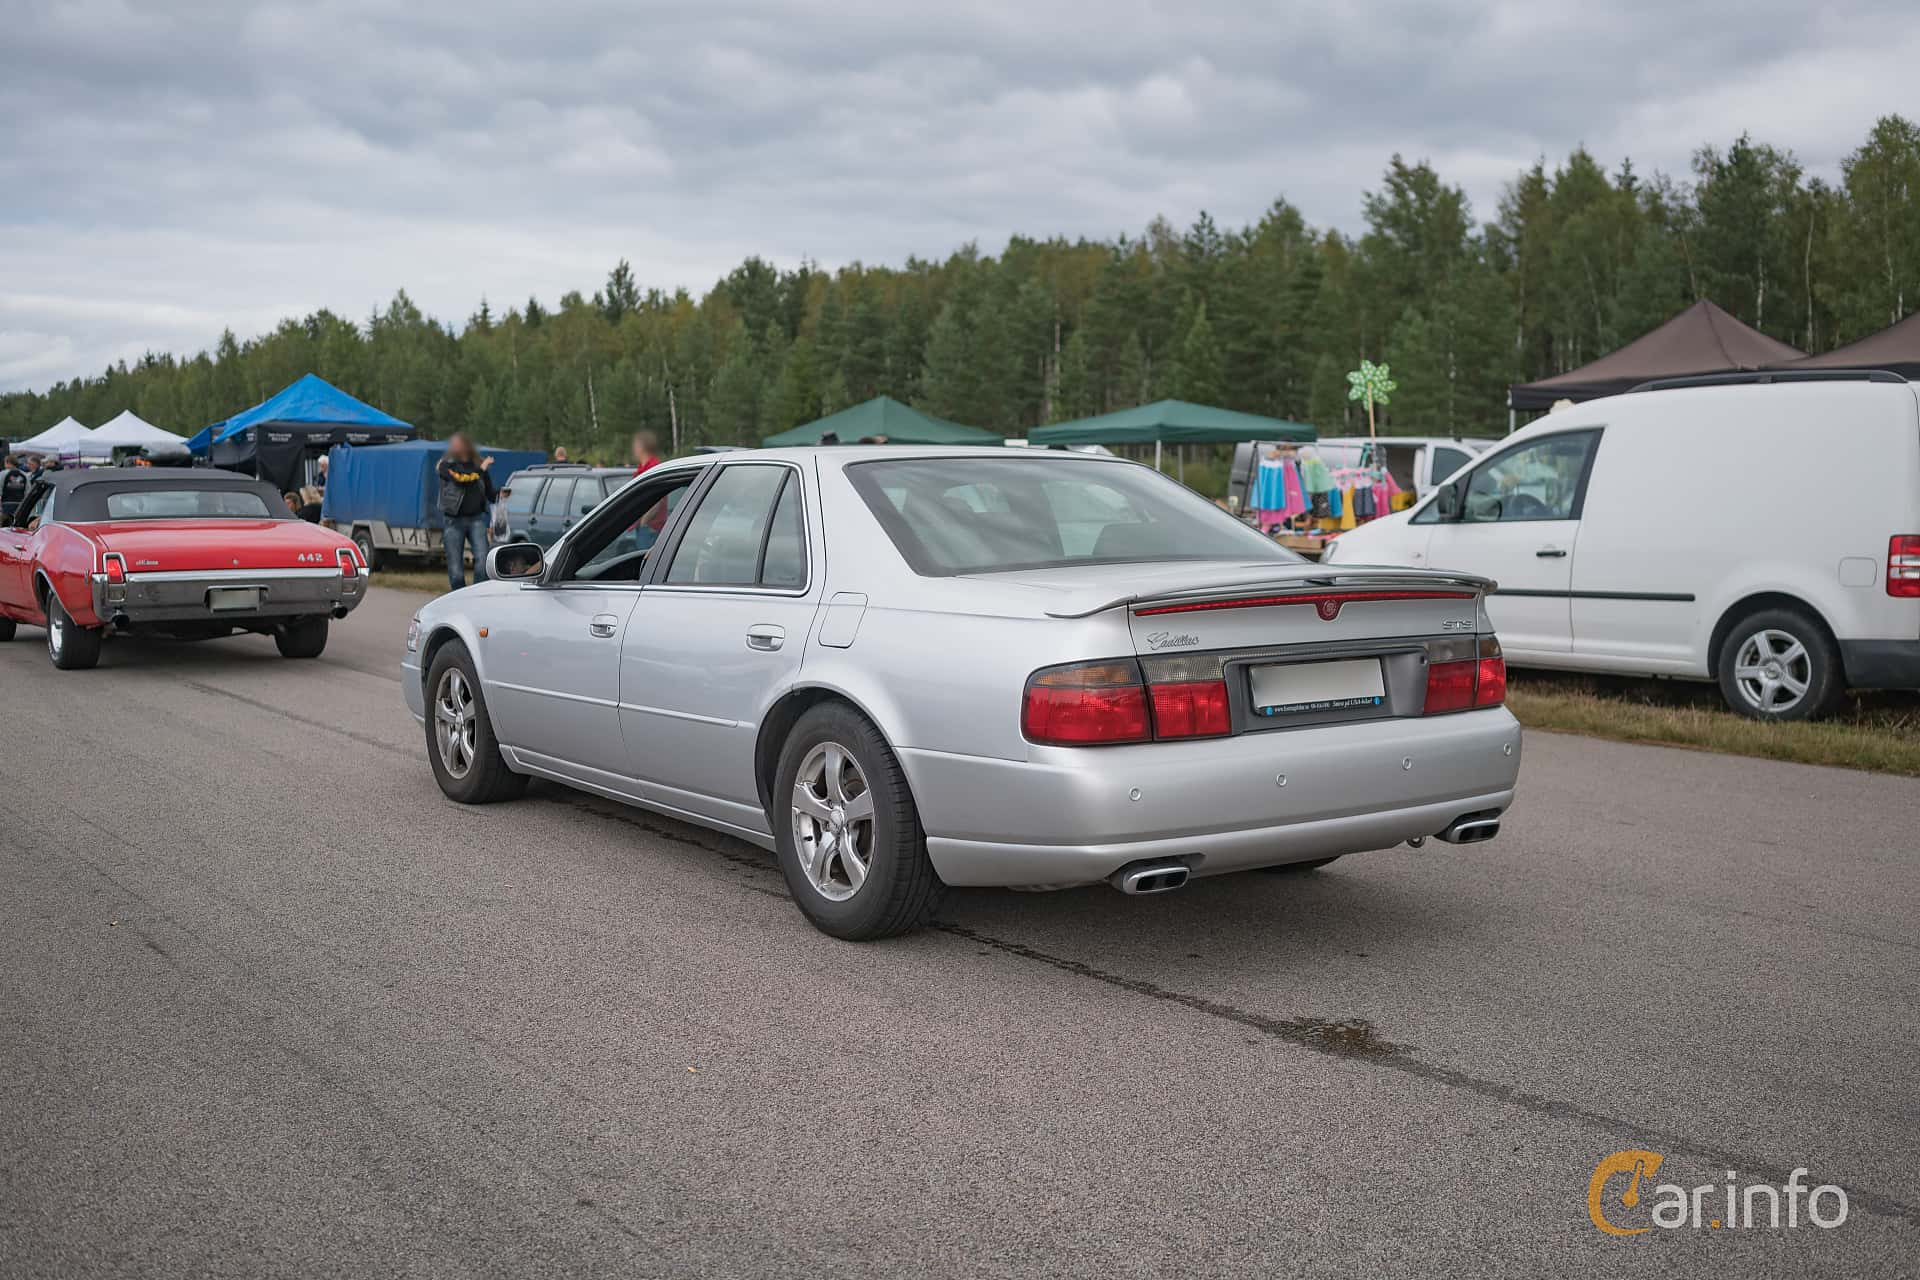 2 Images Of Cadillac Seville Sts 4 6 V8 Automatic 305hp 2000 By